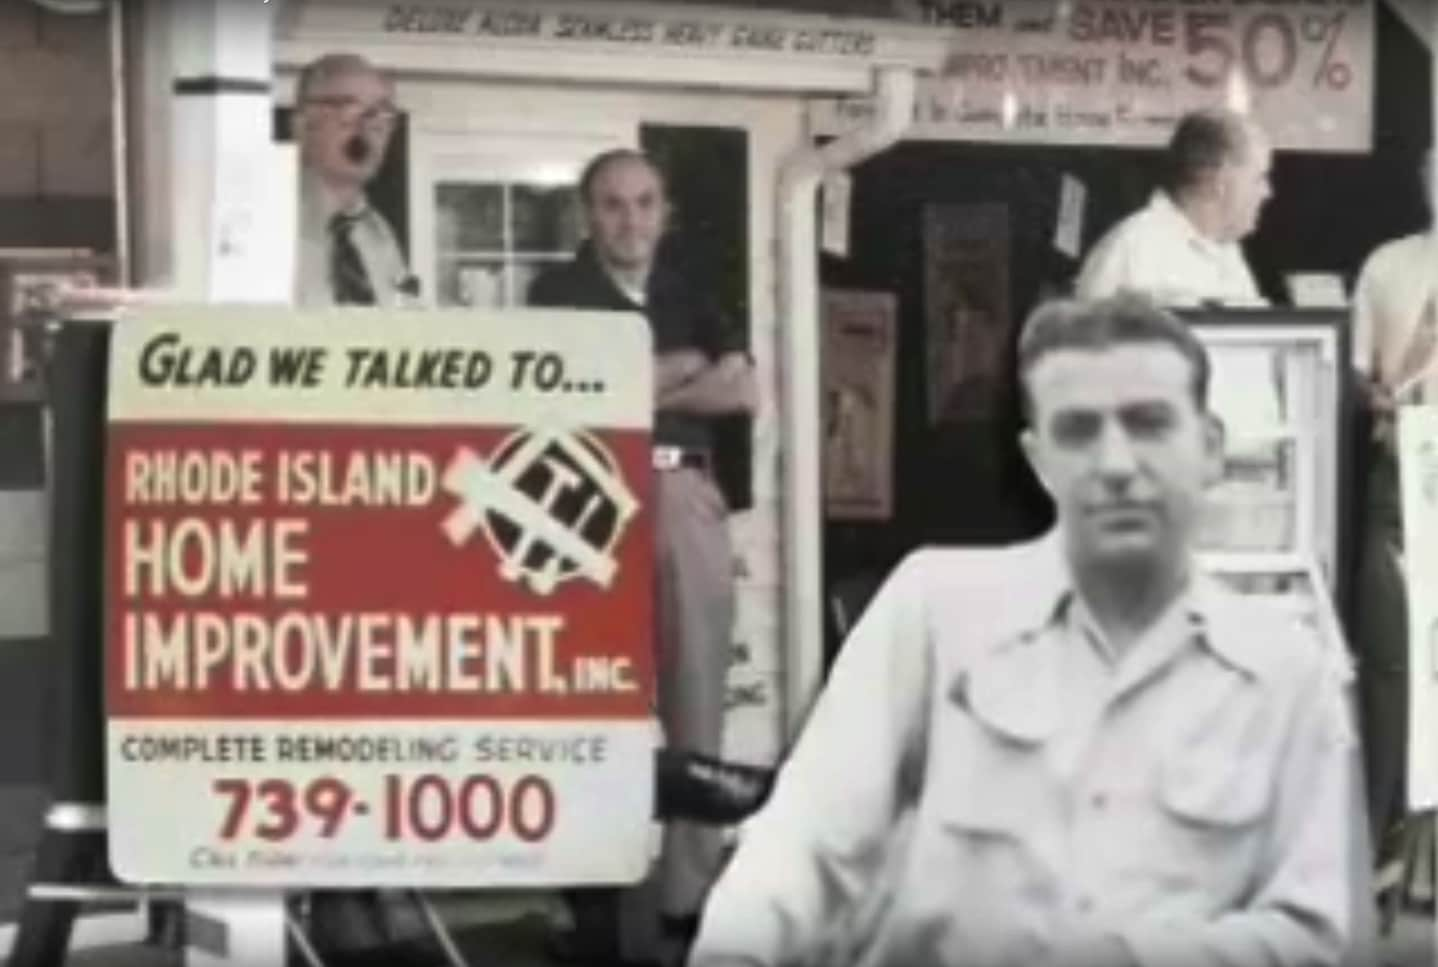 history of rhode island home improvement